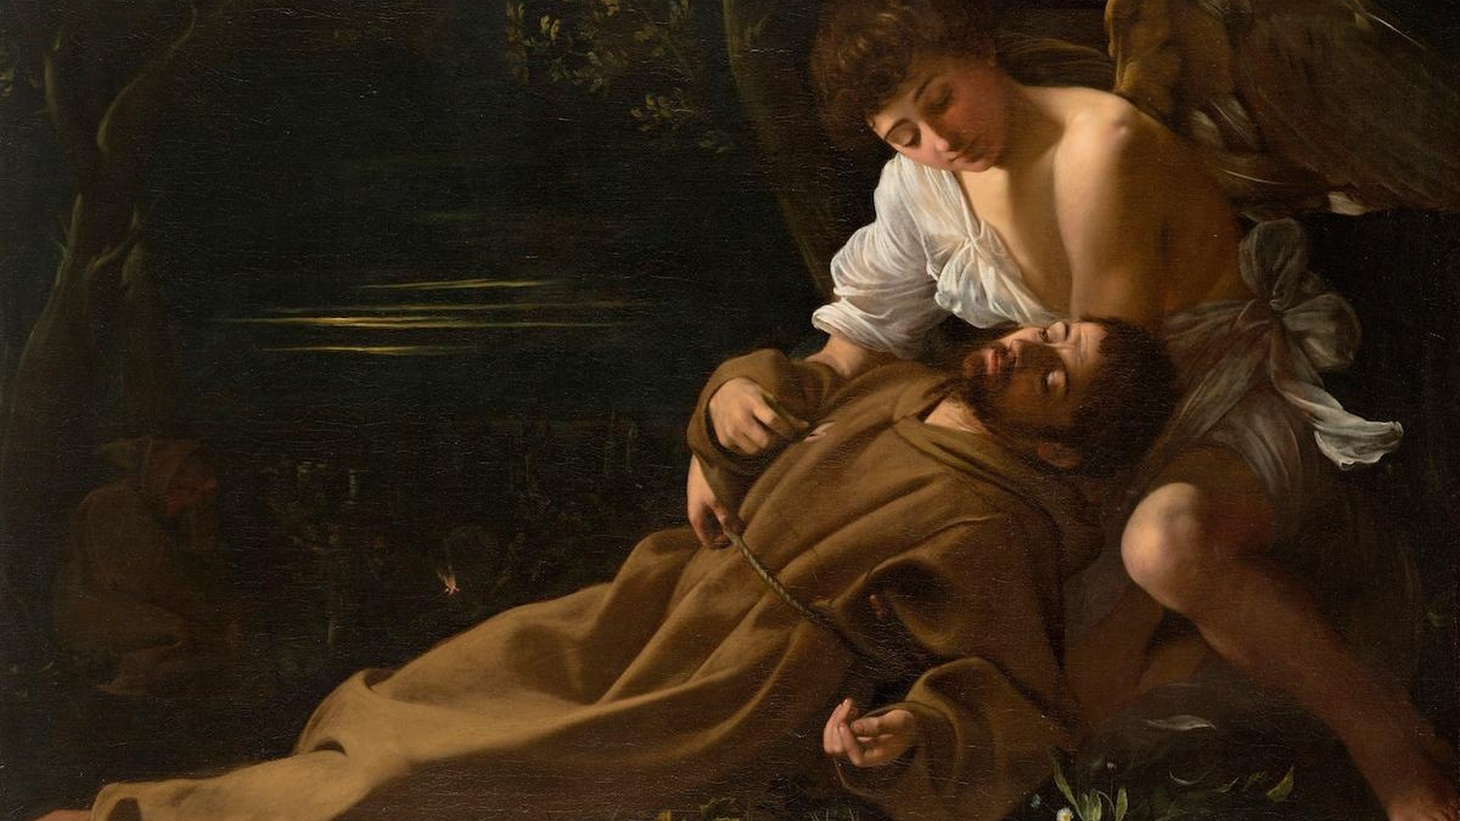 Edward Goldman recommends visiting the exceptional Caravaggio and Giotto exhibitions currently at LACMA and the Getty.